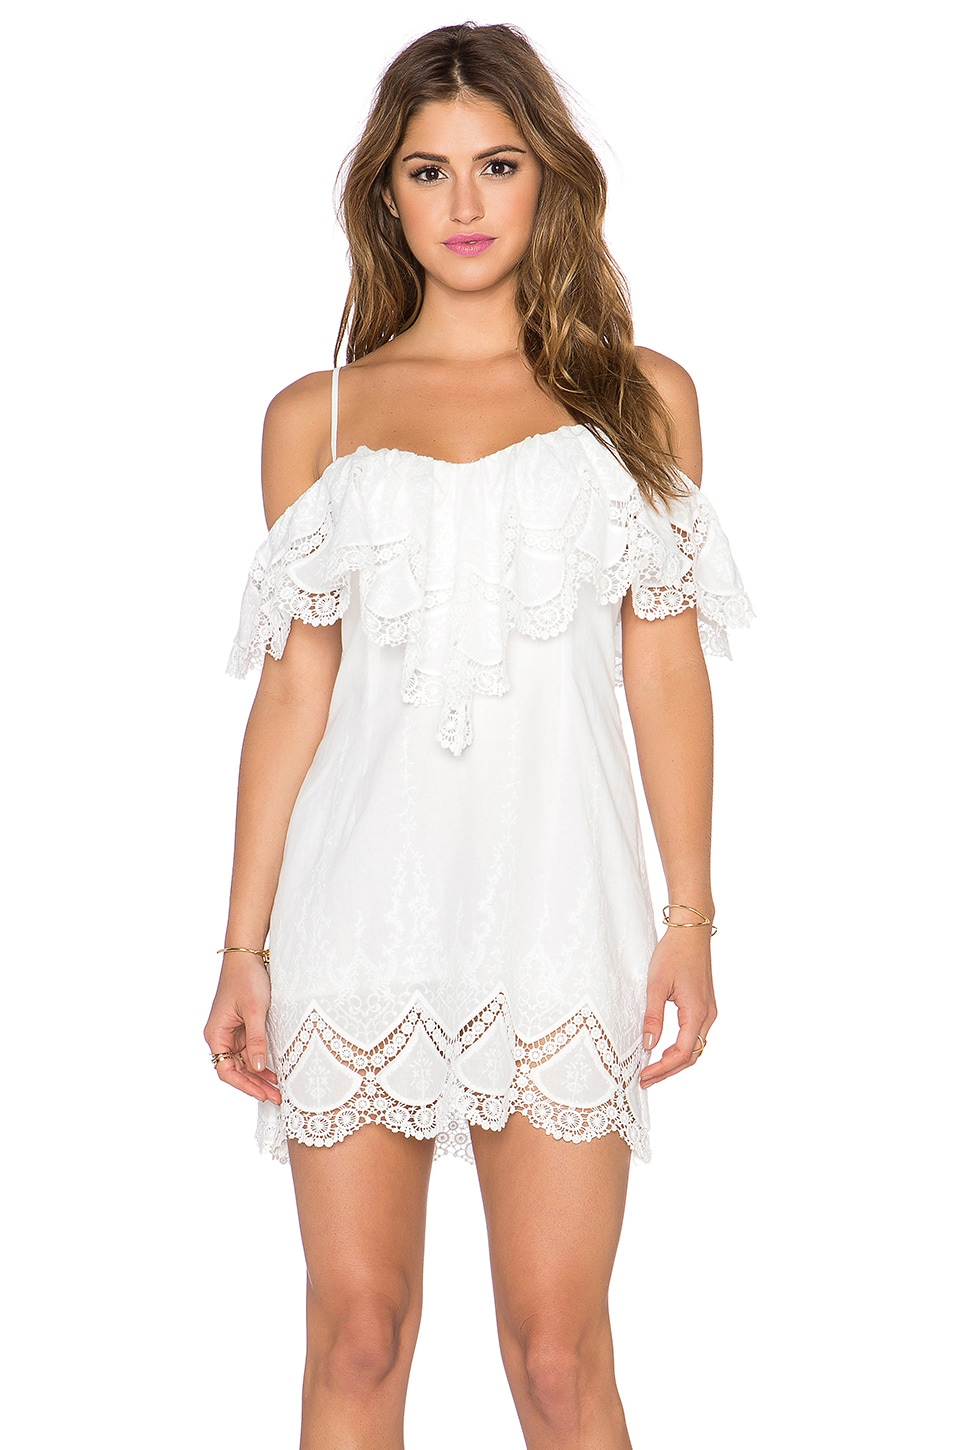 6 SHORE ROAD Beach Lover Dress in Moonlight